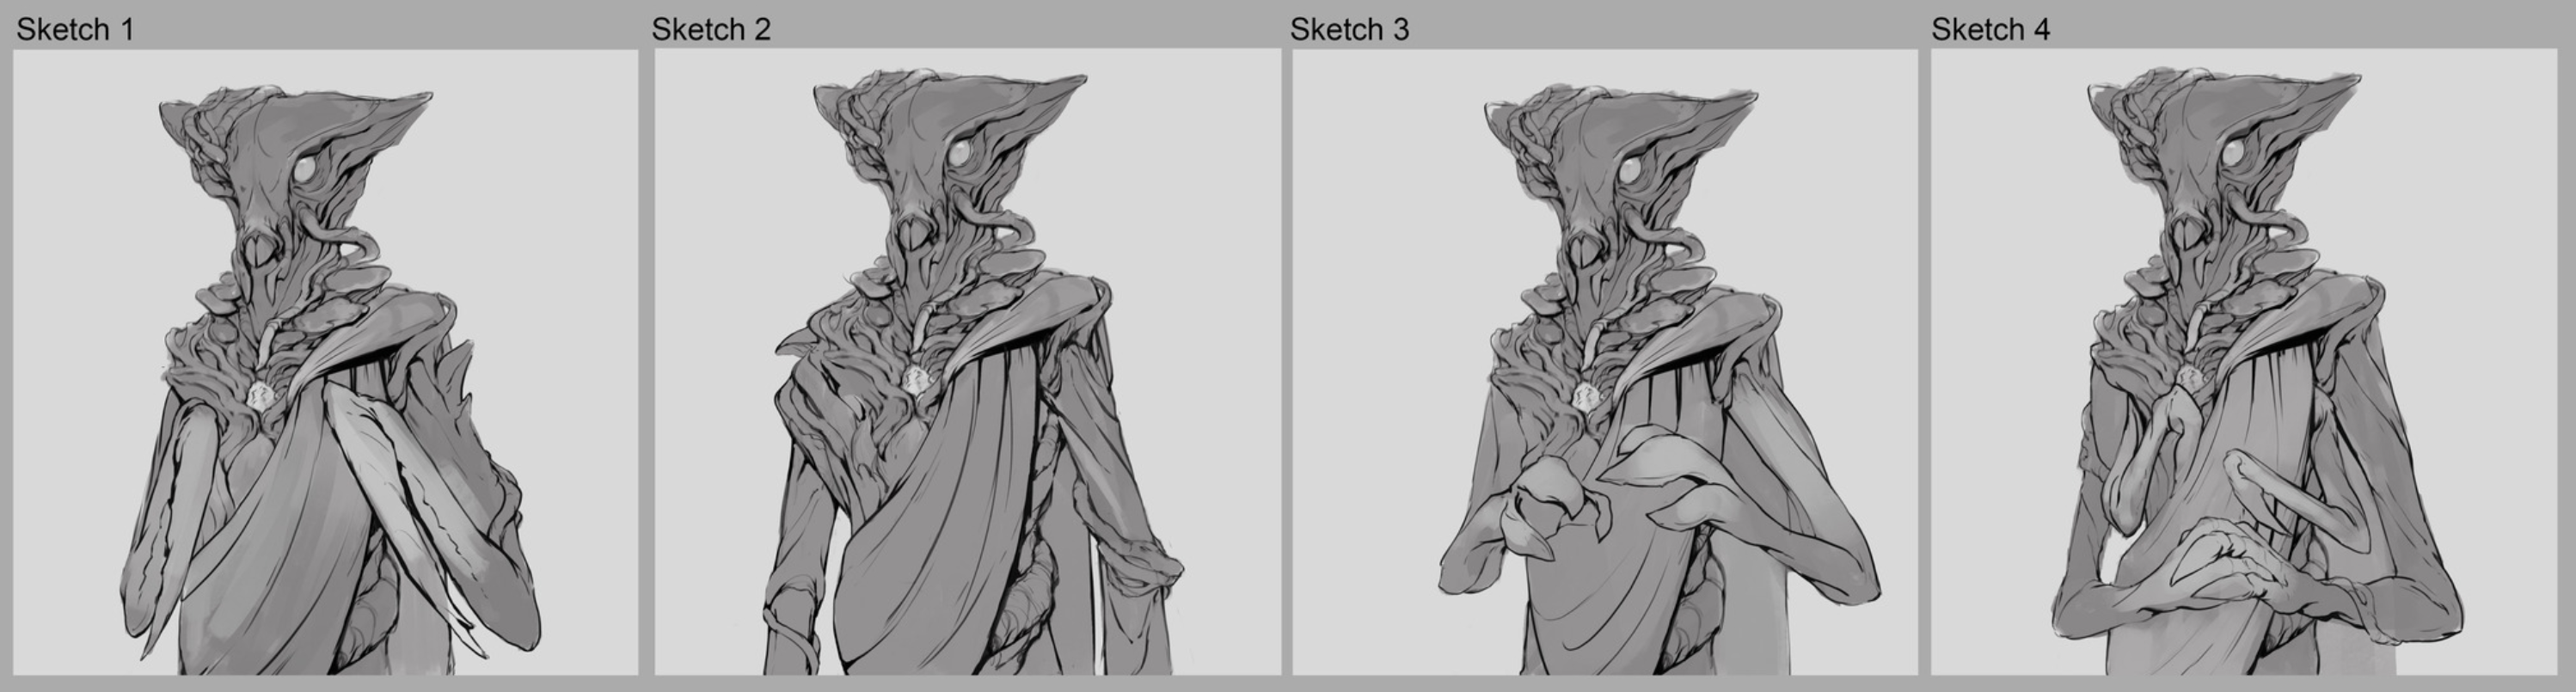 05_species_development_02_refinement.png